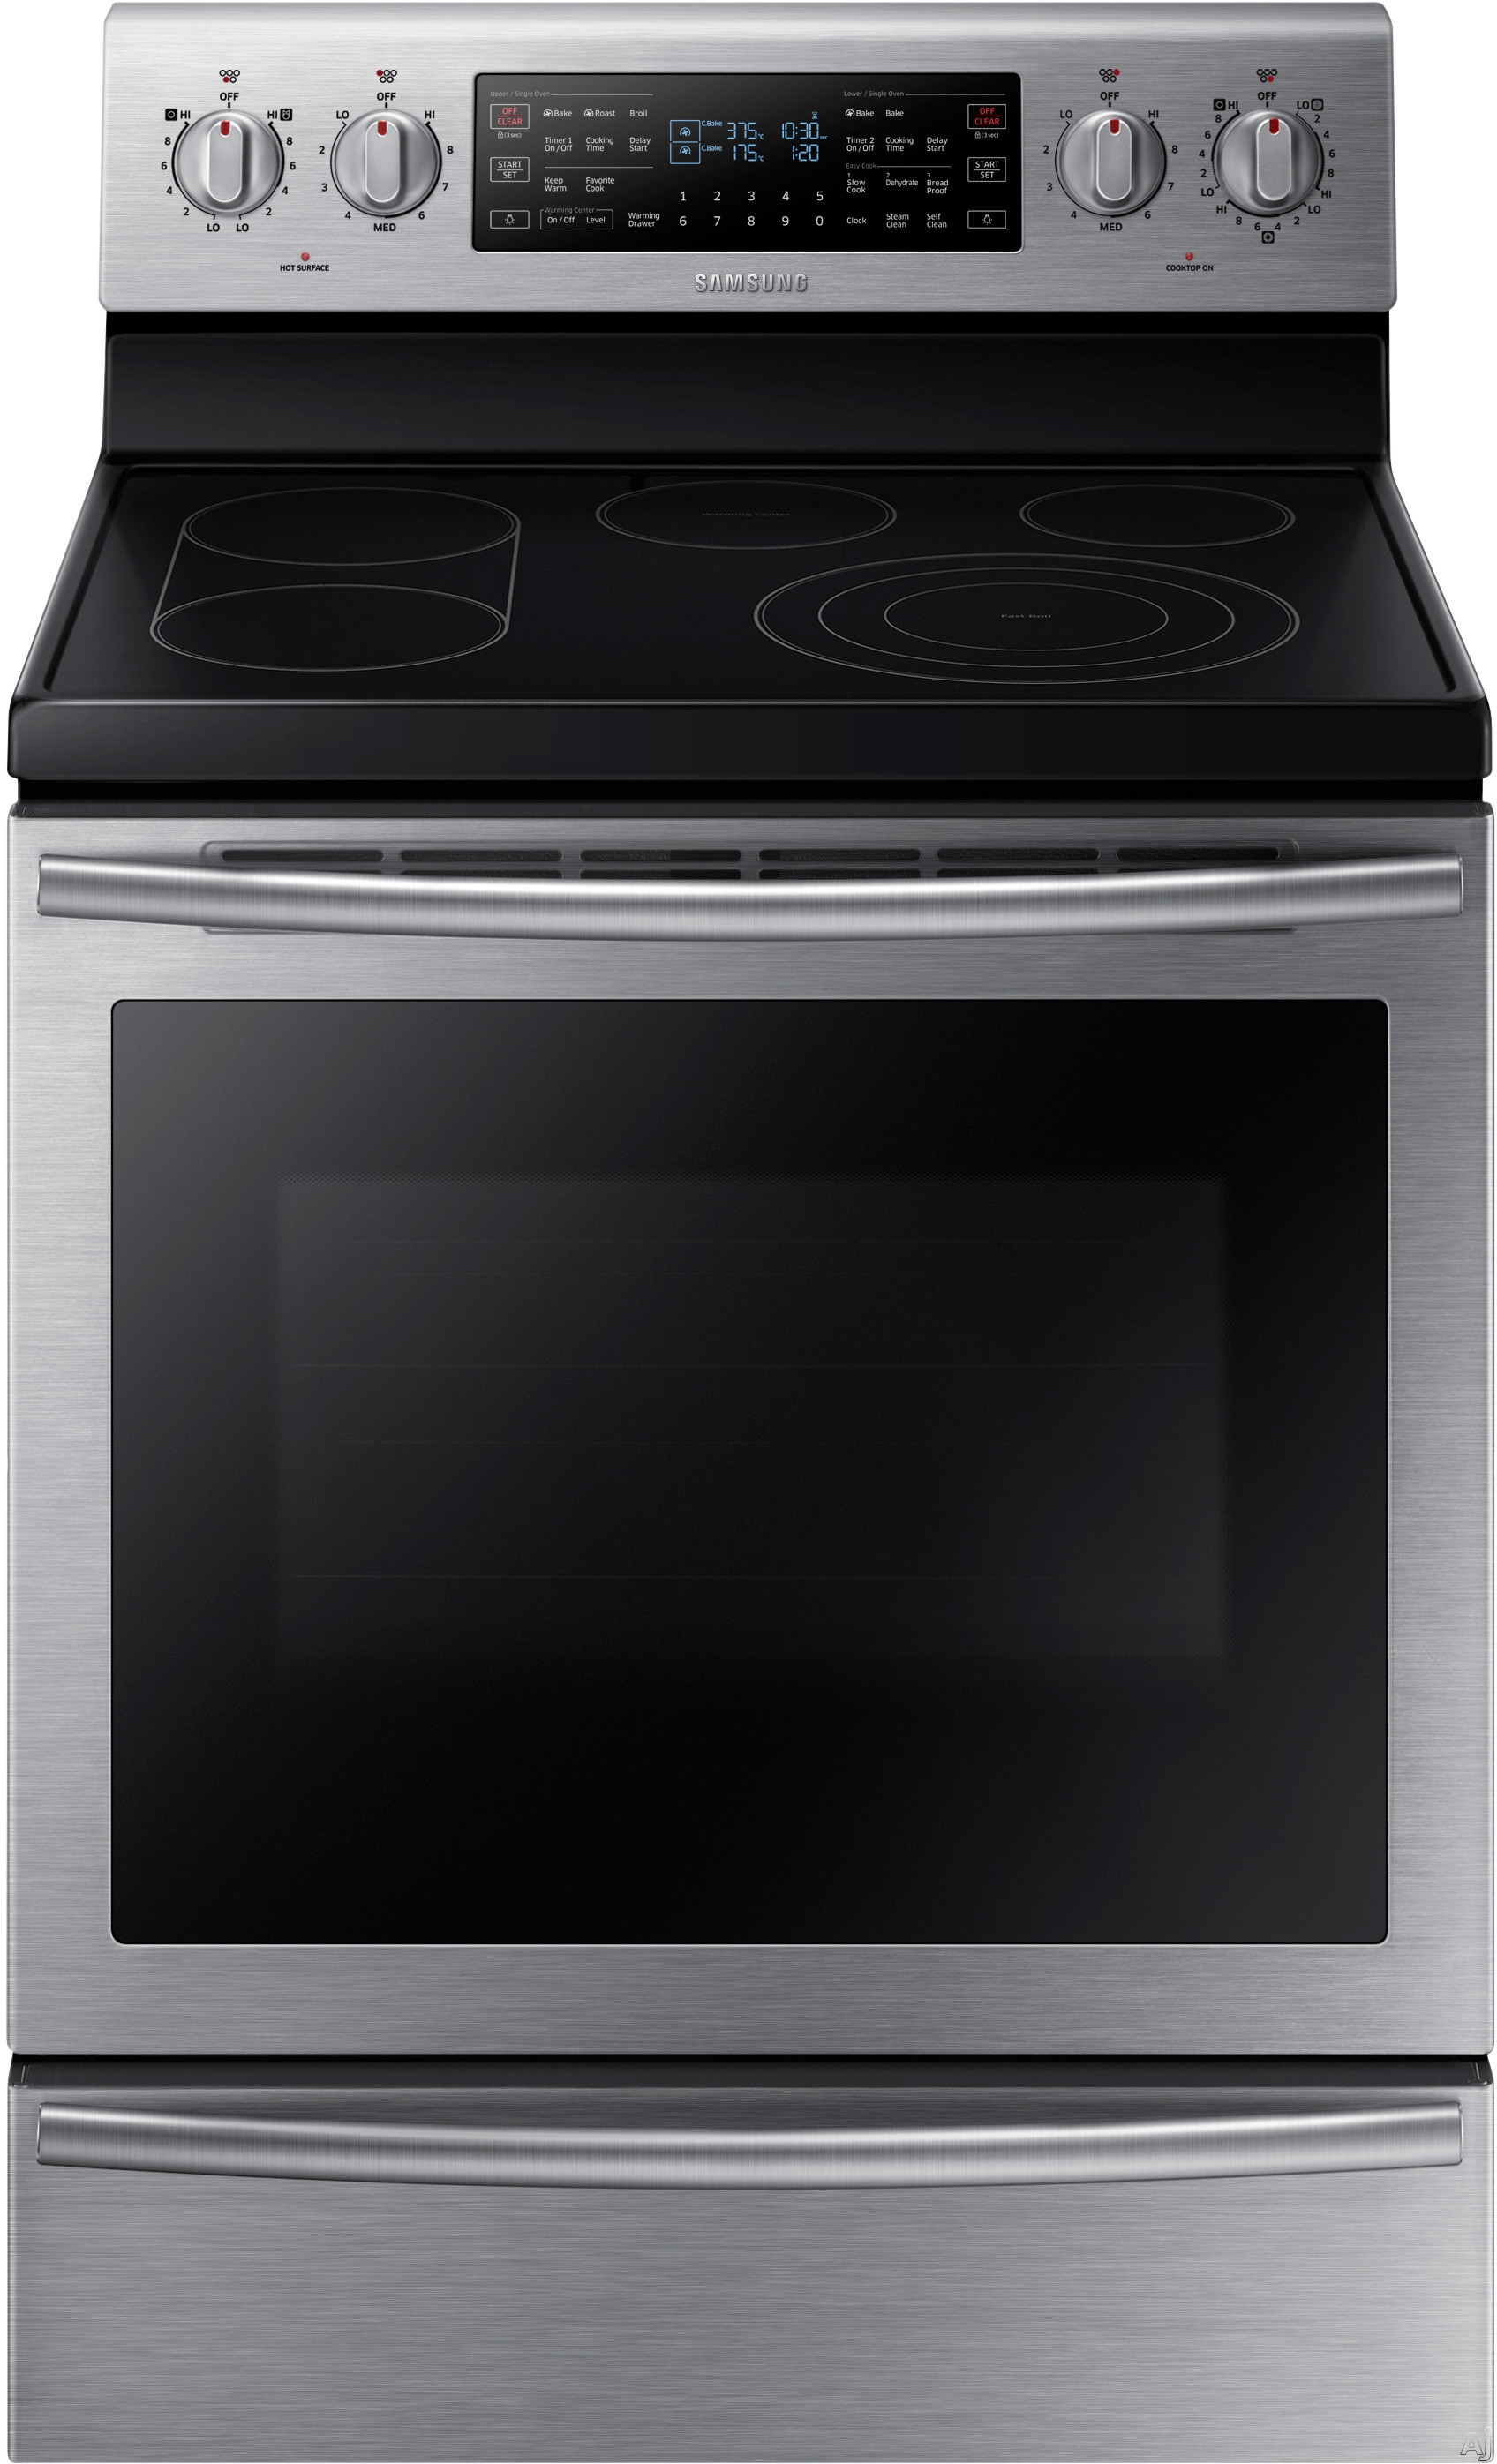 """Samsung NE59J7750WS 30 Inch Freestanding Electric Range with 5 Smoothtop Elements, 5.9 cu. ft. Flex Duo Dual Convection Oven, 6""""""""/9""""""""/12 Inch 3000W Element, Soft Close Door, Warming Drawer and Steam Clean"""" NE59J7750WS"""